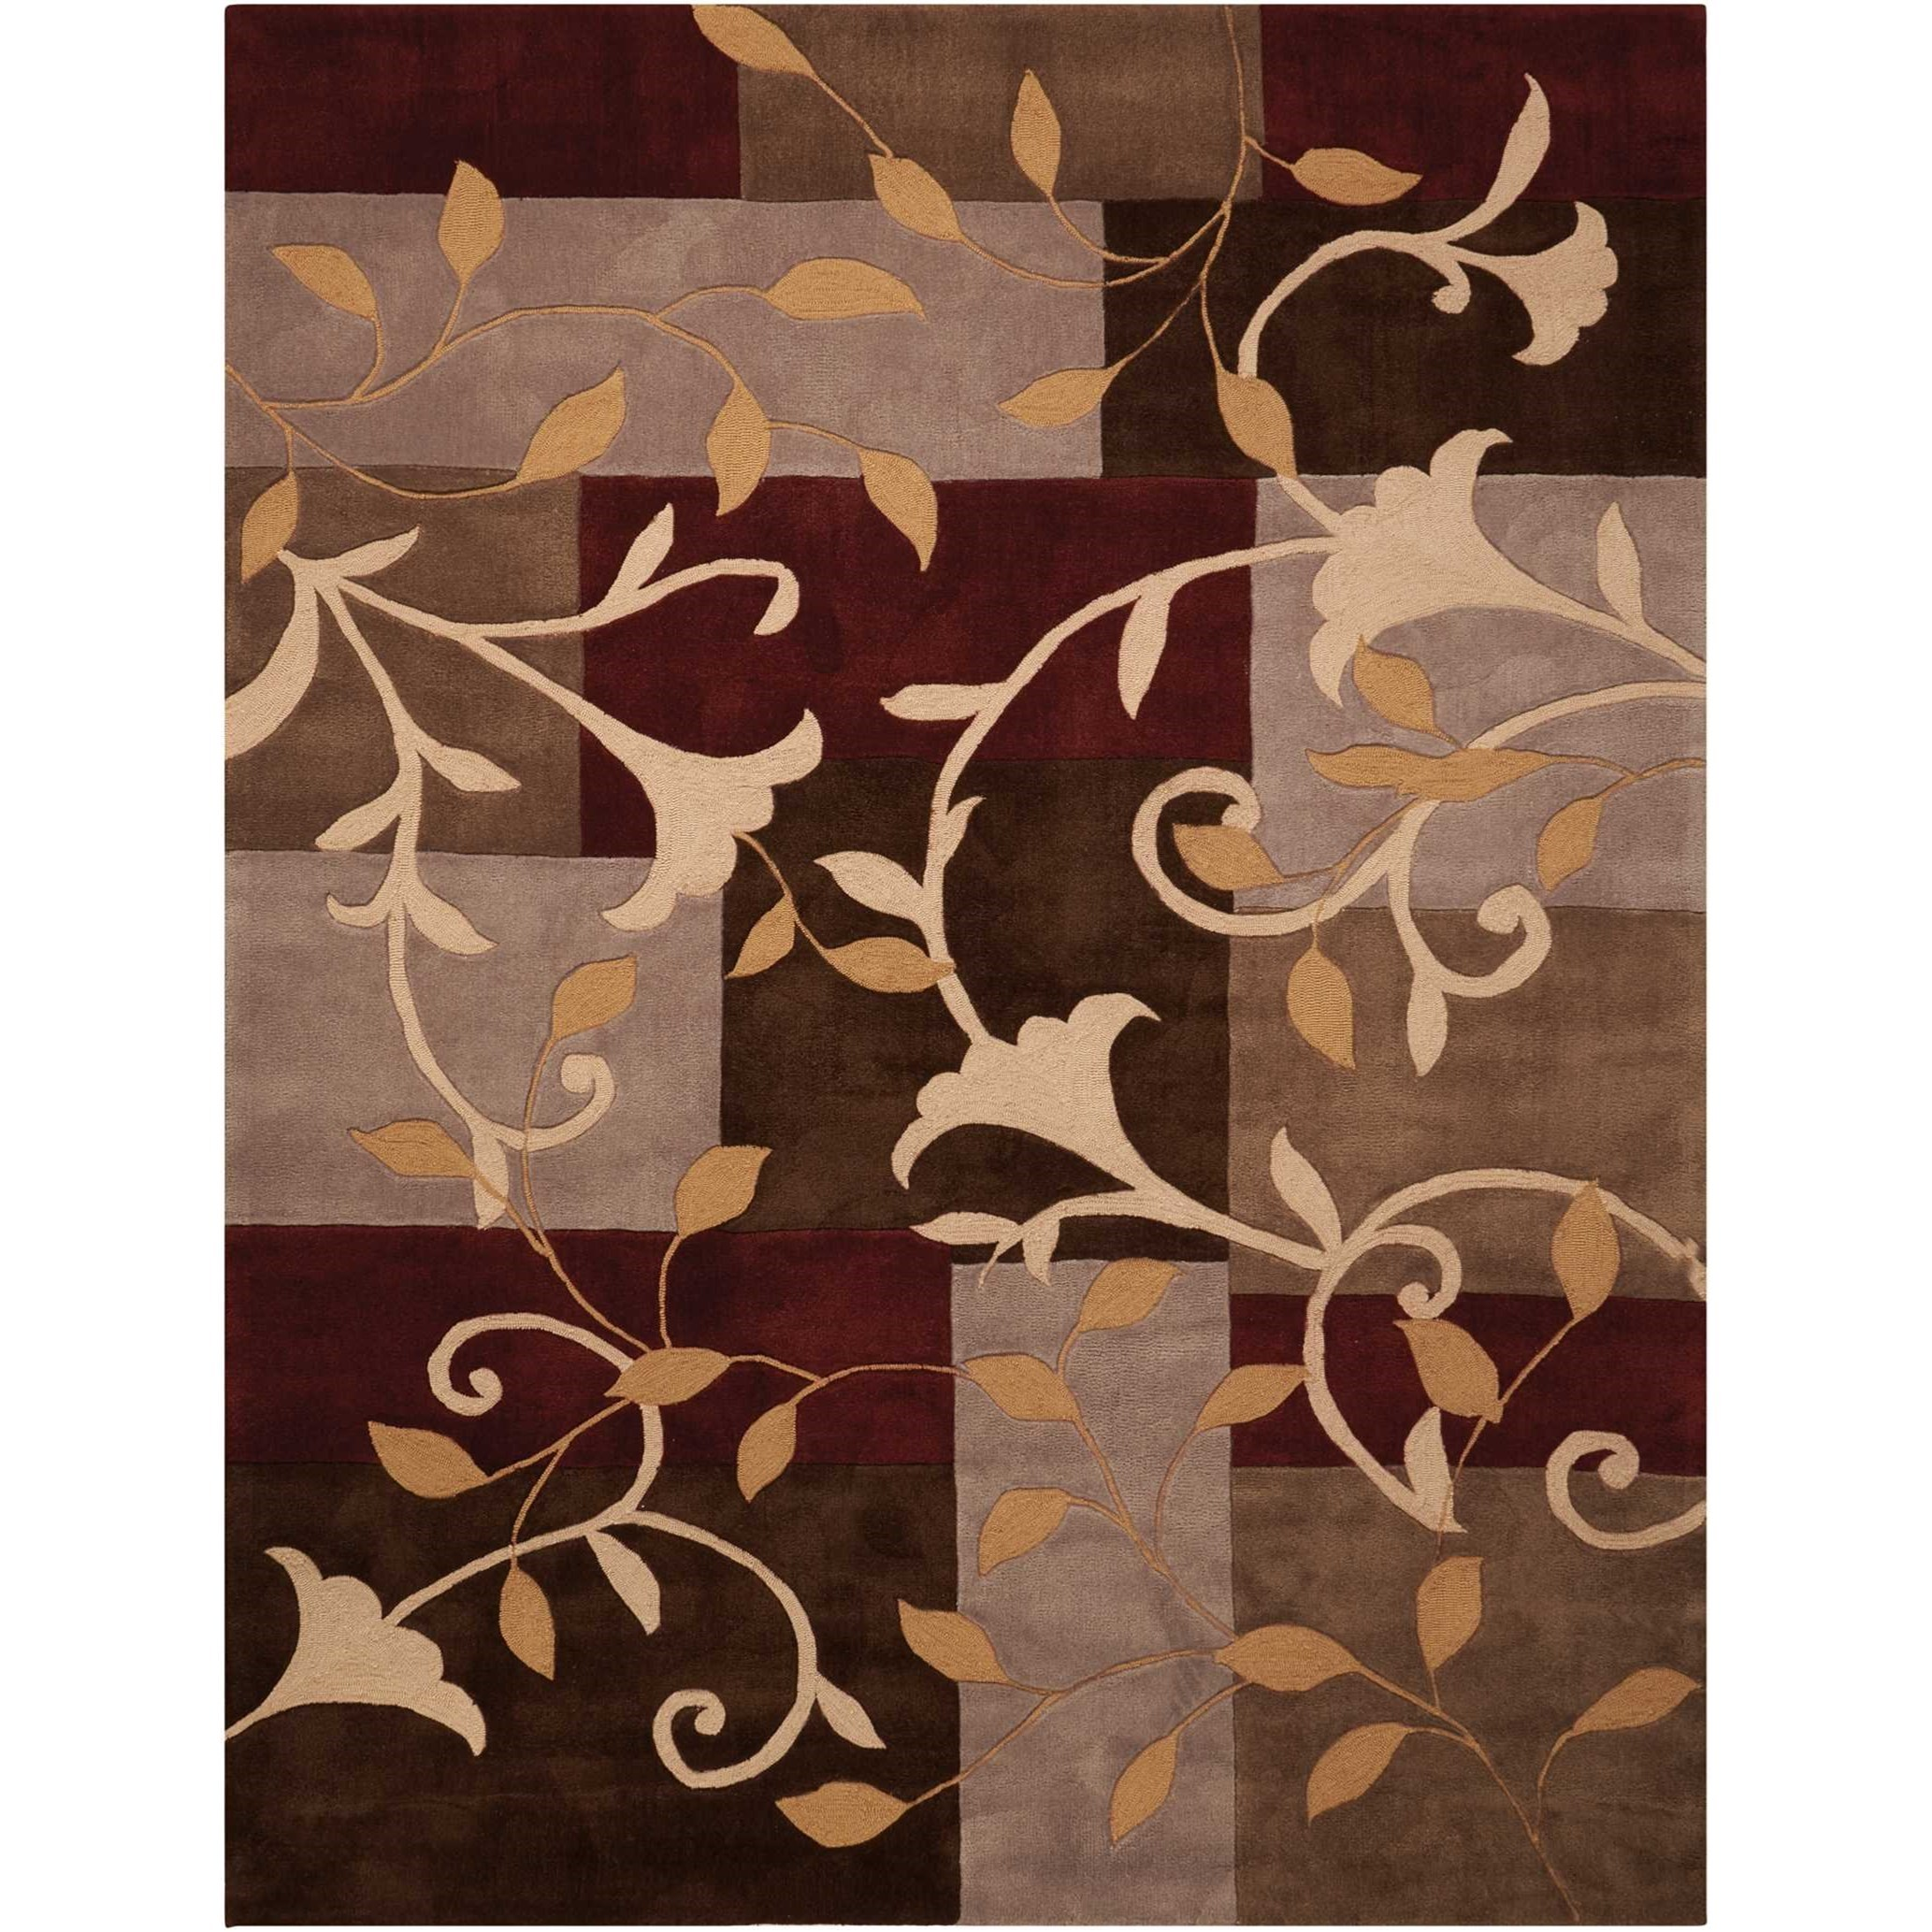 Contour Contour CON01 Brown 5'x8'  Area Rug by Nourison at Home Collections Furniture